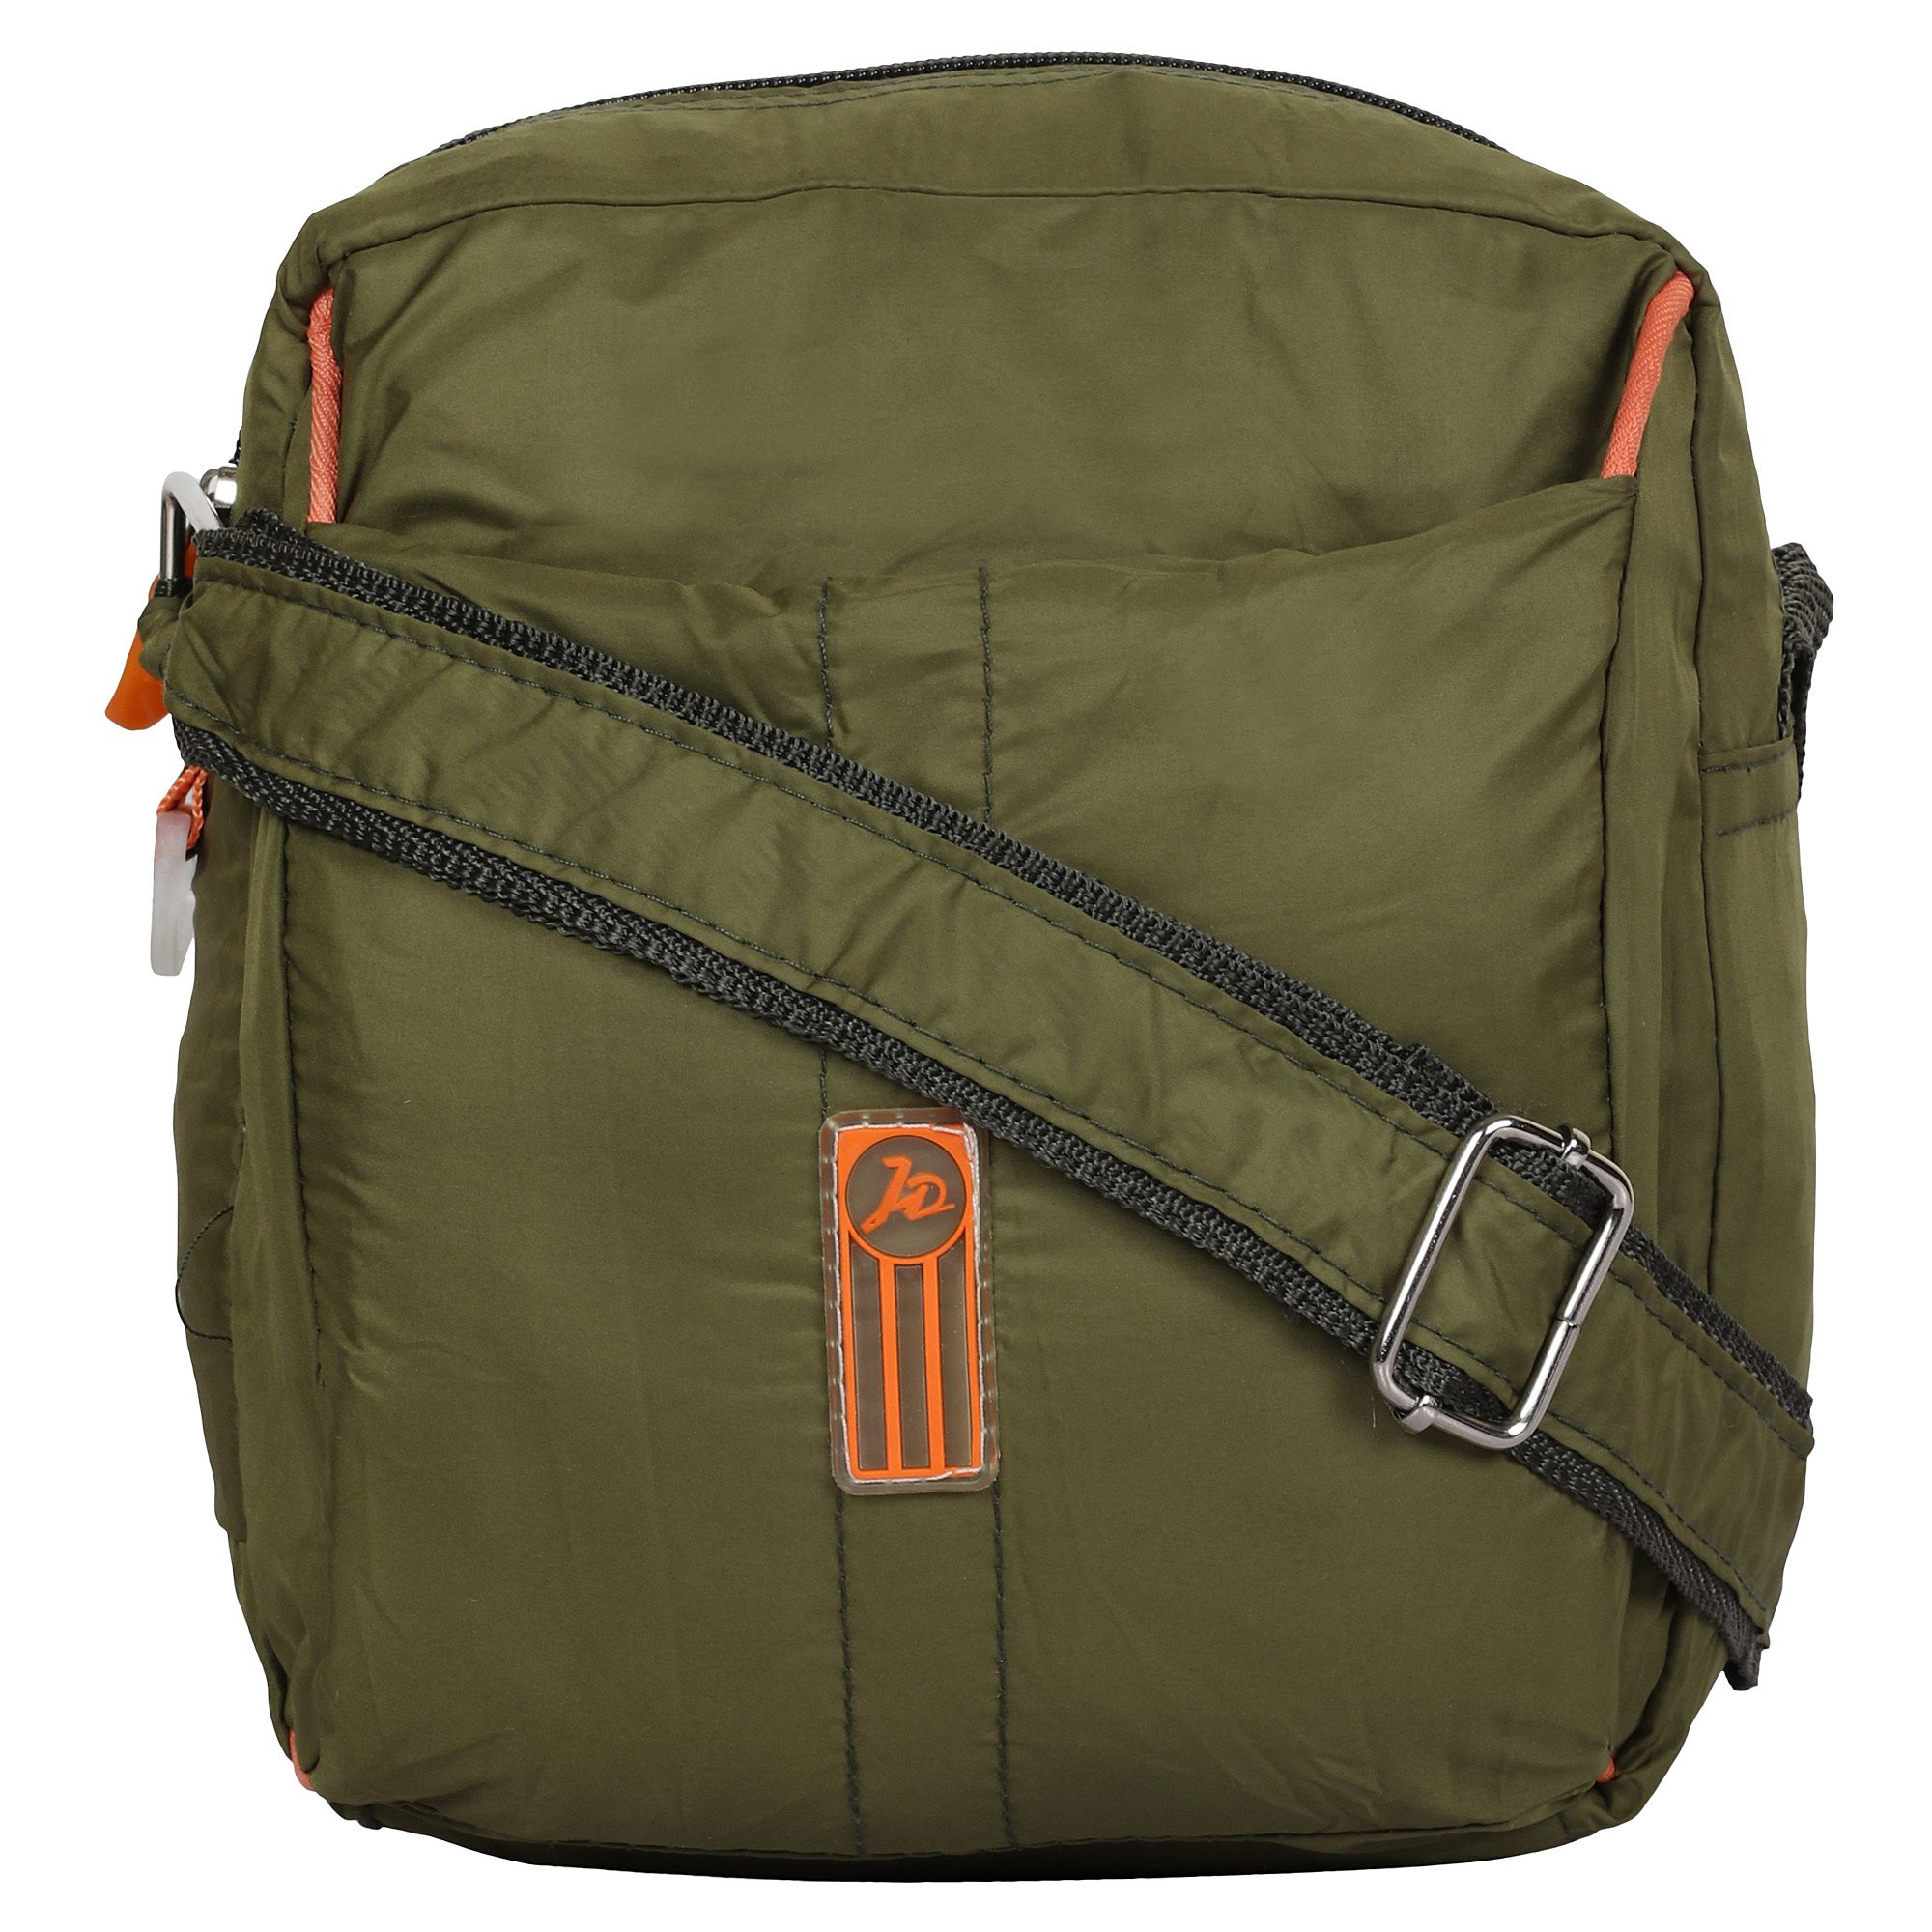 Anicks Green P.U. Sling Bag